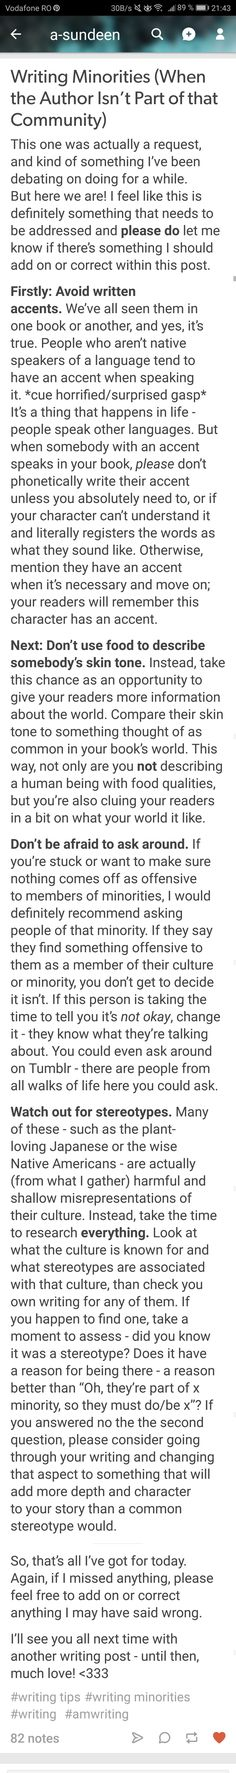 I disagree with the food part though. Sometimes it can be cringy but it can be done well and no big deal.